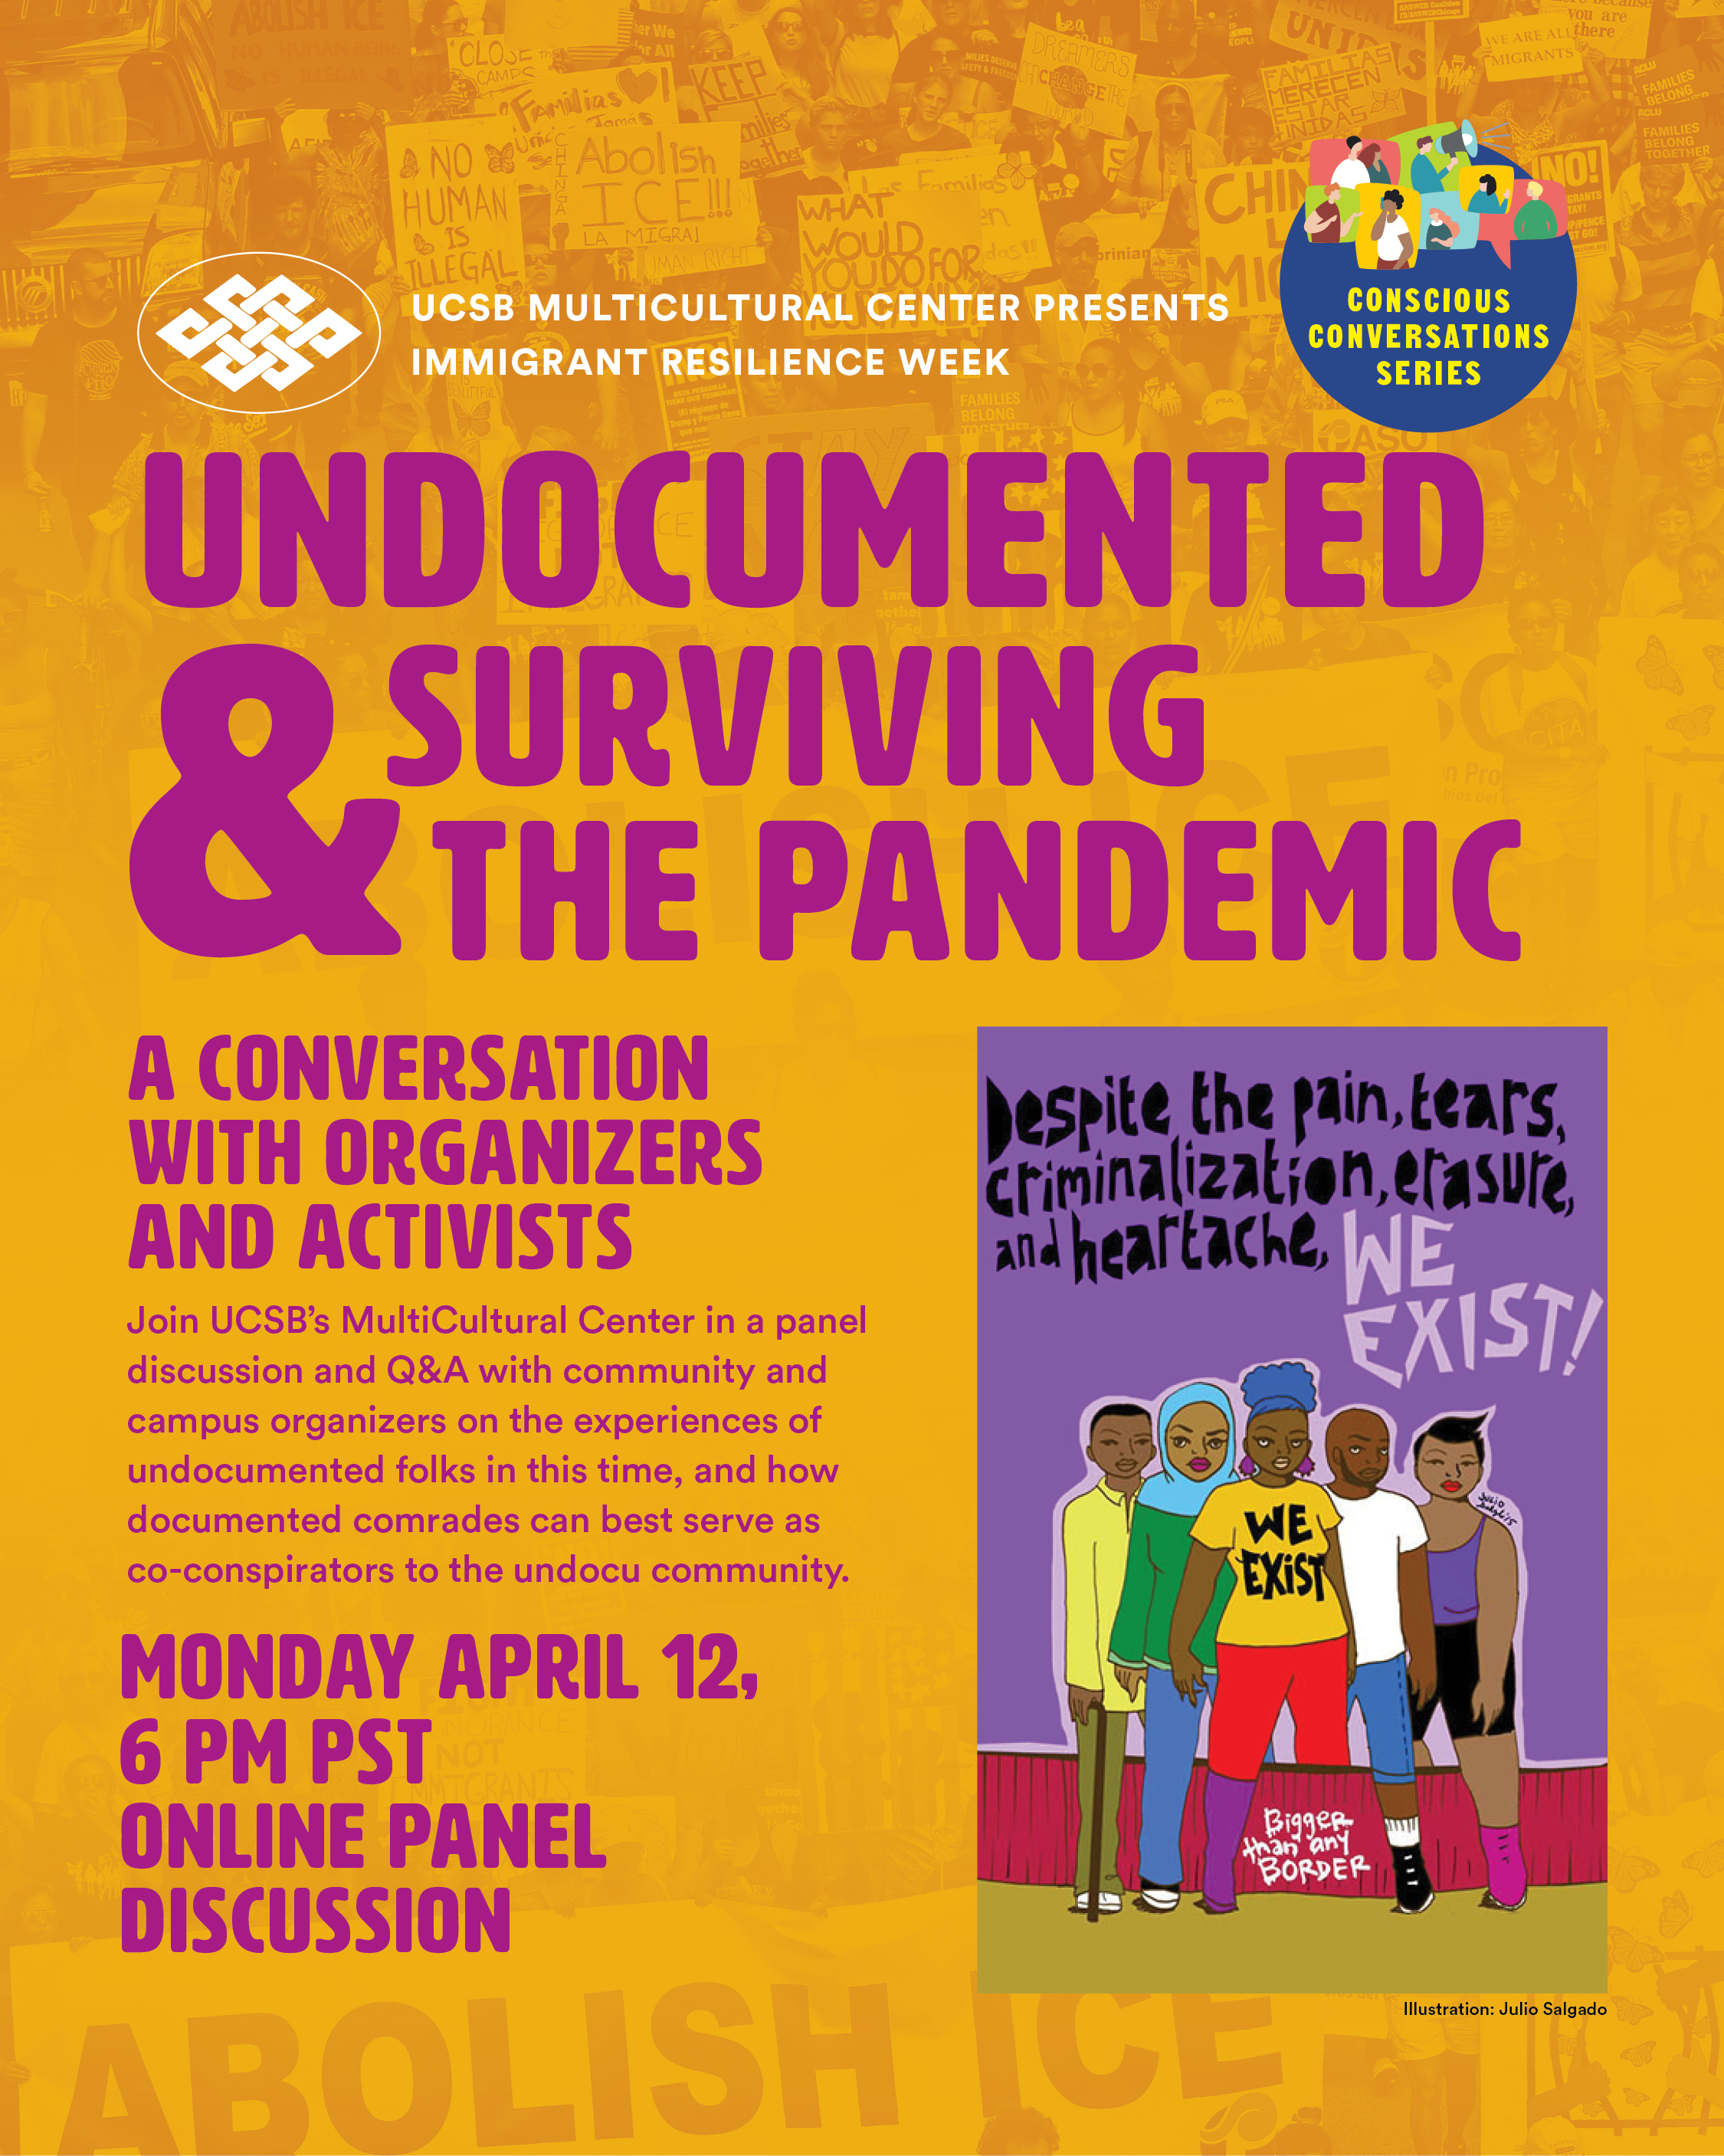 Undocumented & Surviving the Pandemic